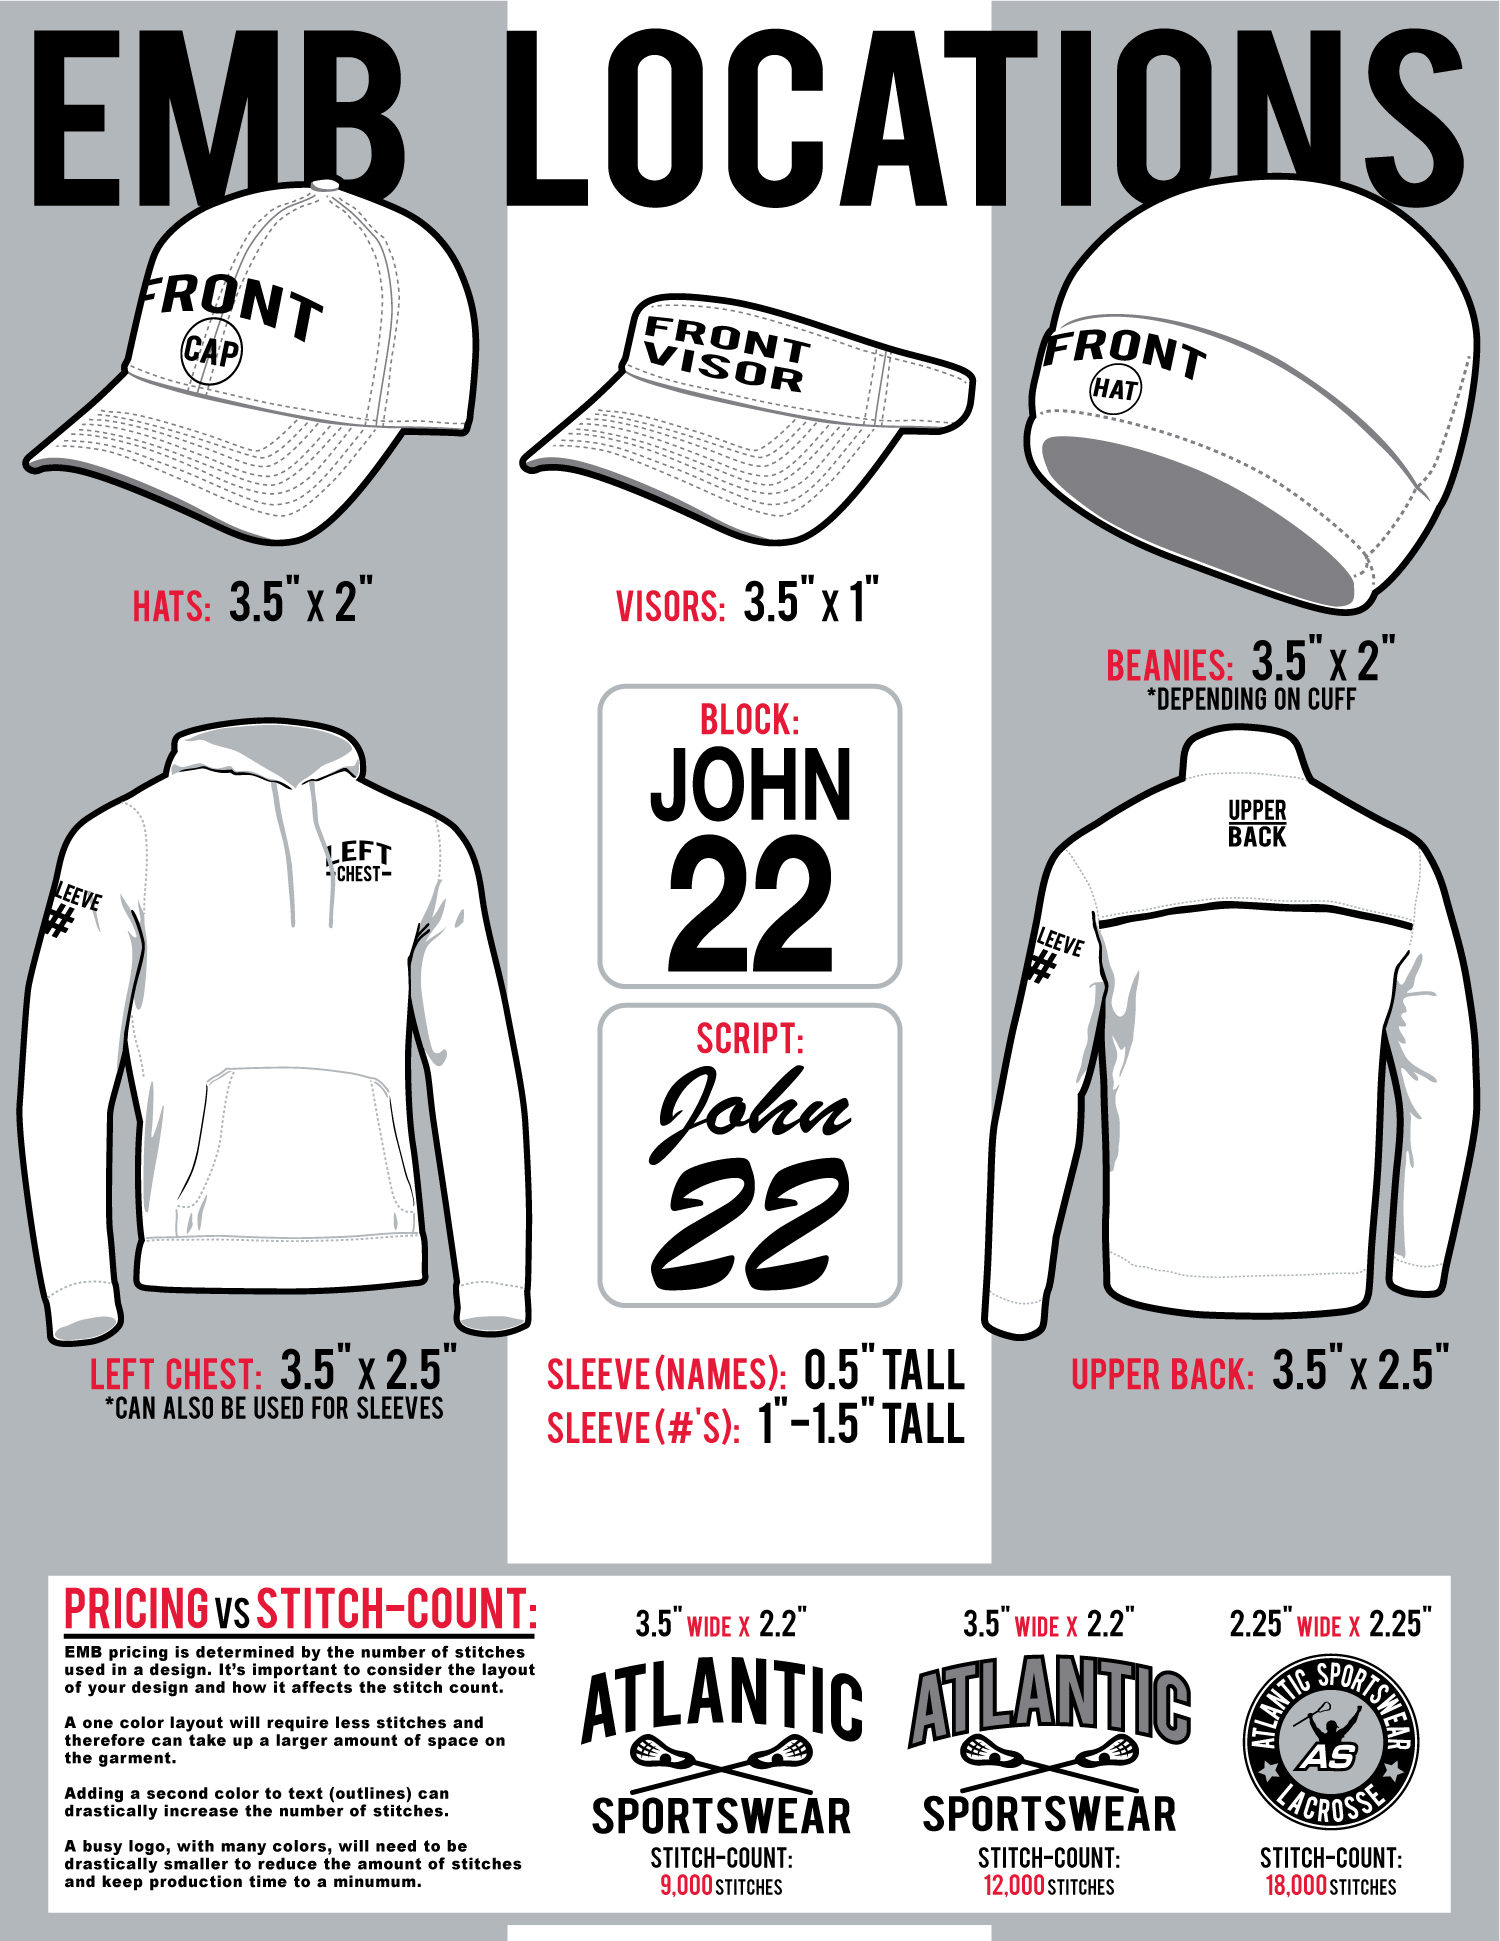 Embroidery Size And Locations Atlantic Sportswear